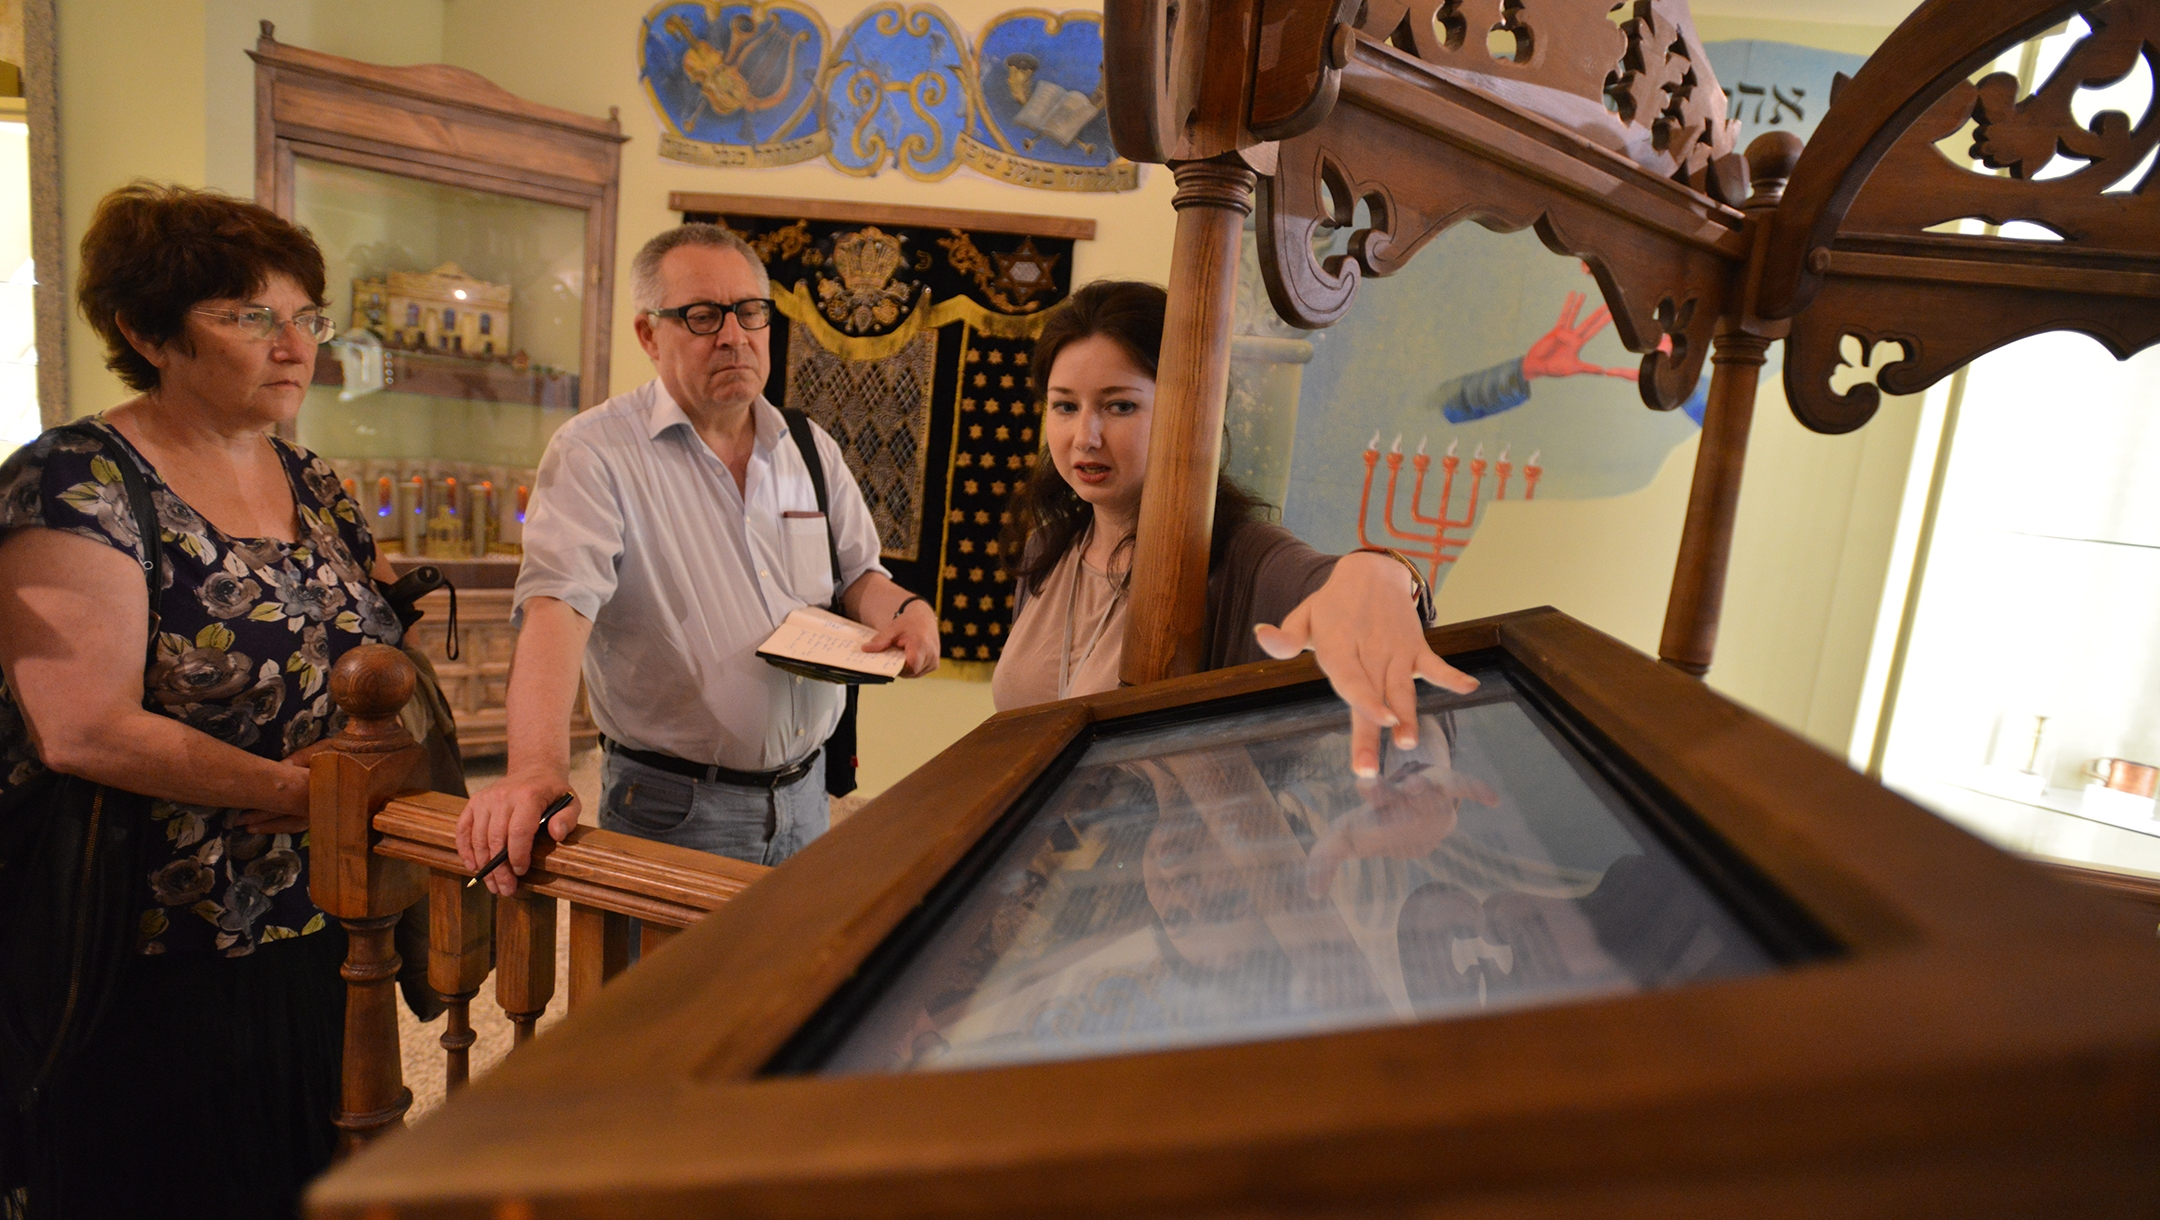 A guide explaining to visitor about the Holocaust at the Tkuma museum in Denpro, Ukraine on May 20, 2014. (Cnaan Liphshiz)